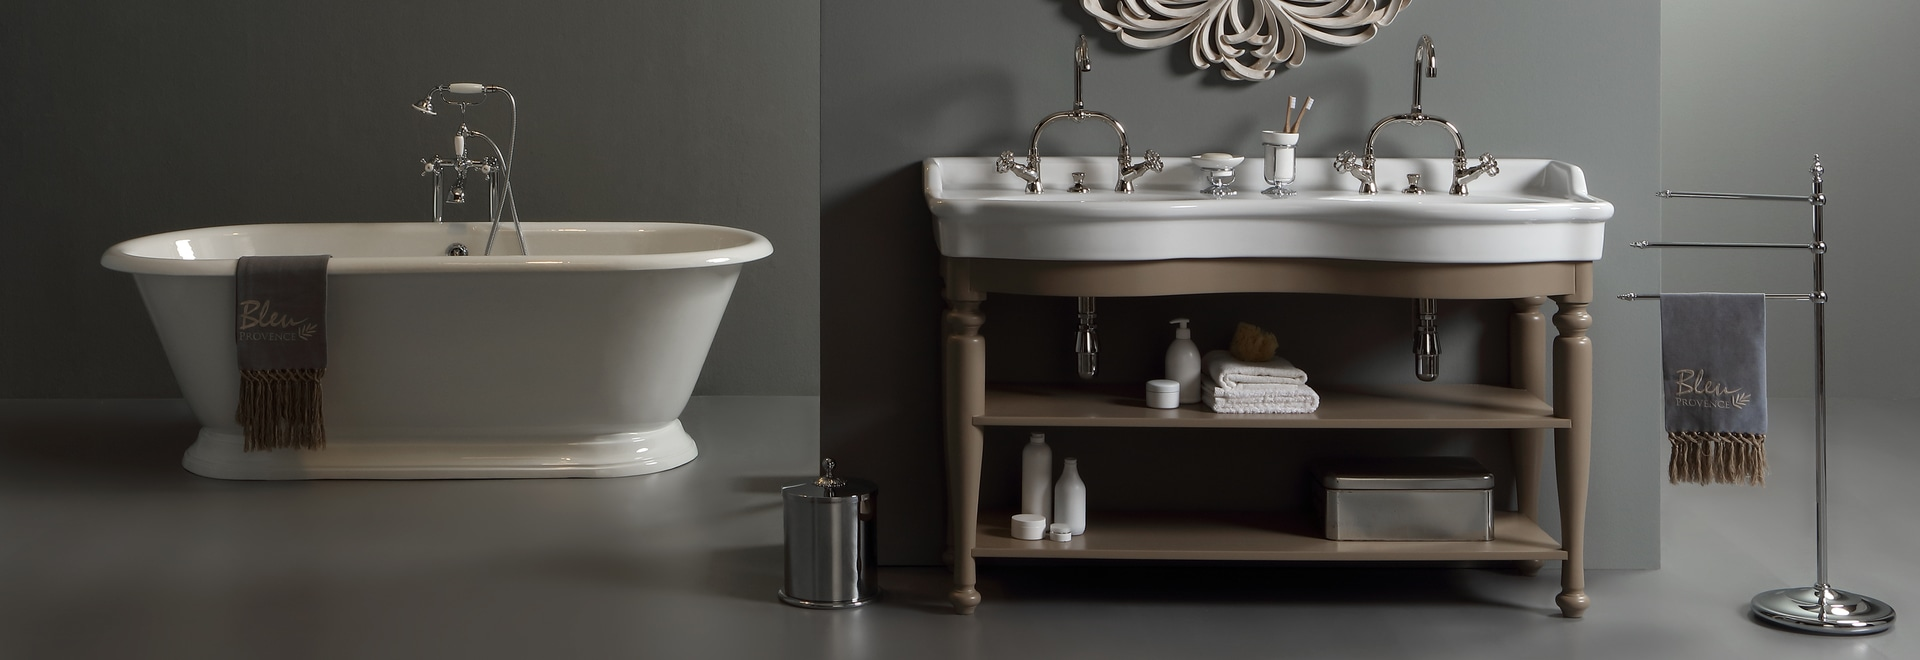 Classic double washbasin with wooden furniture